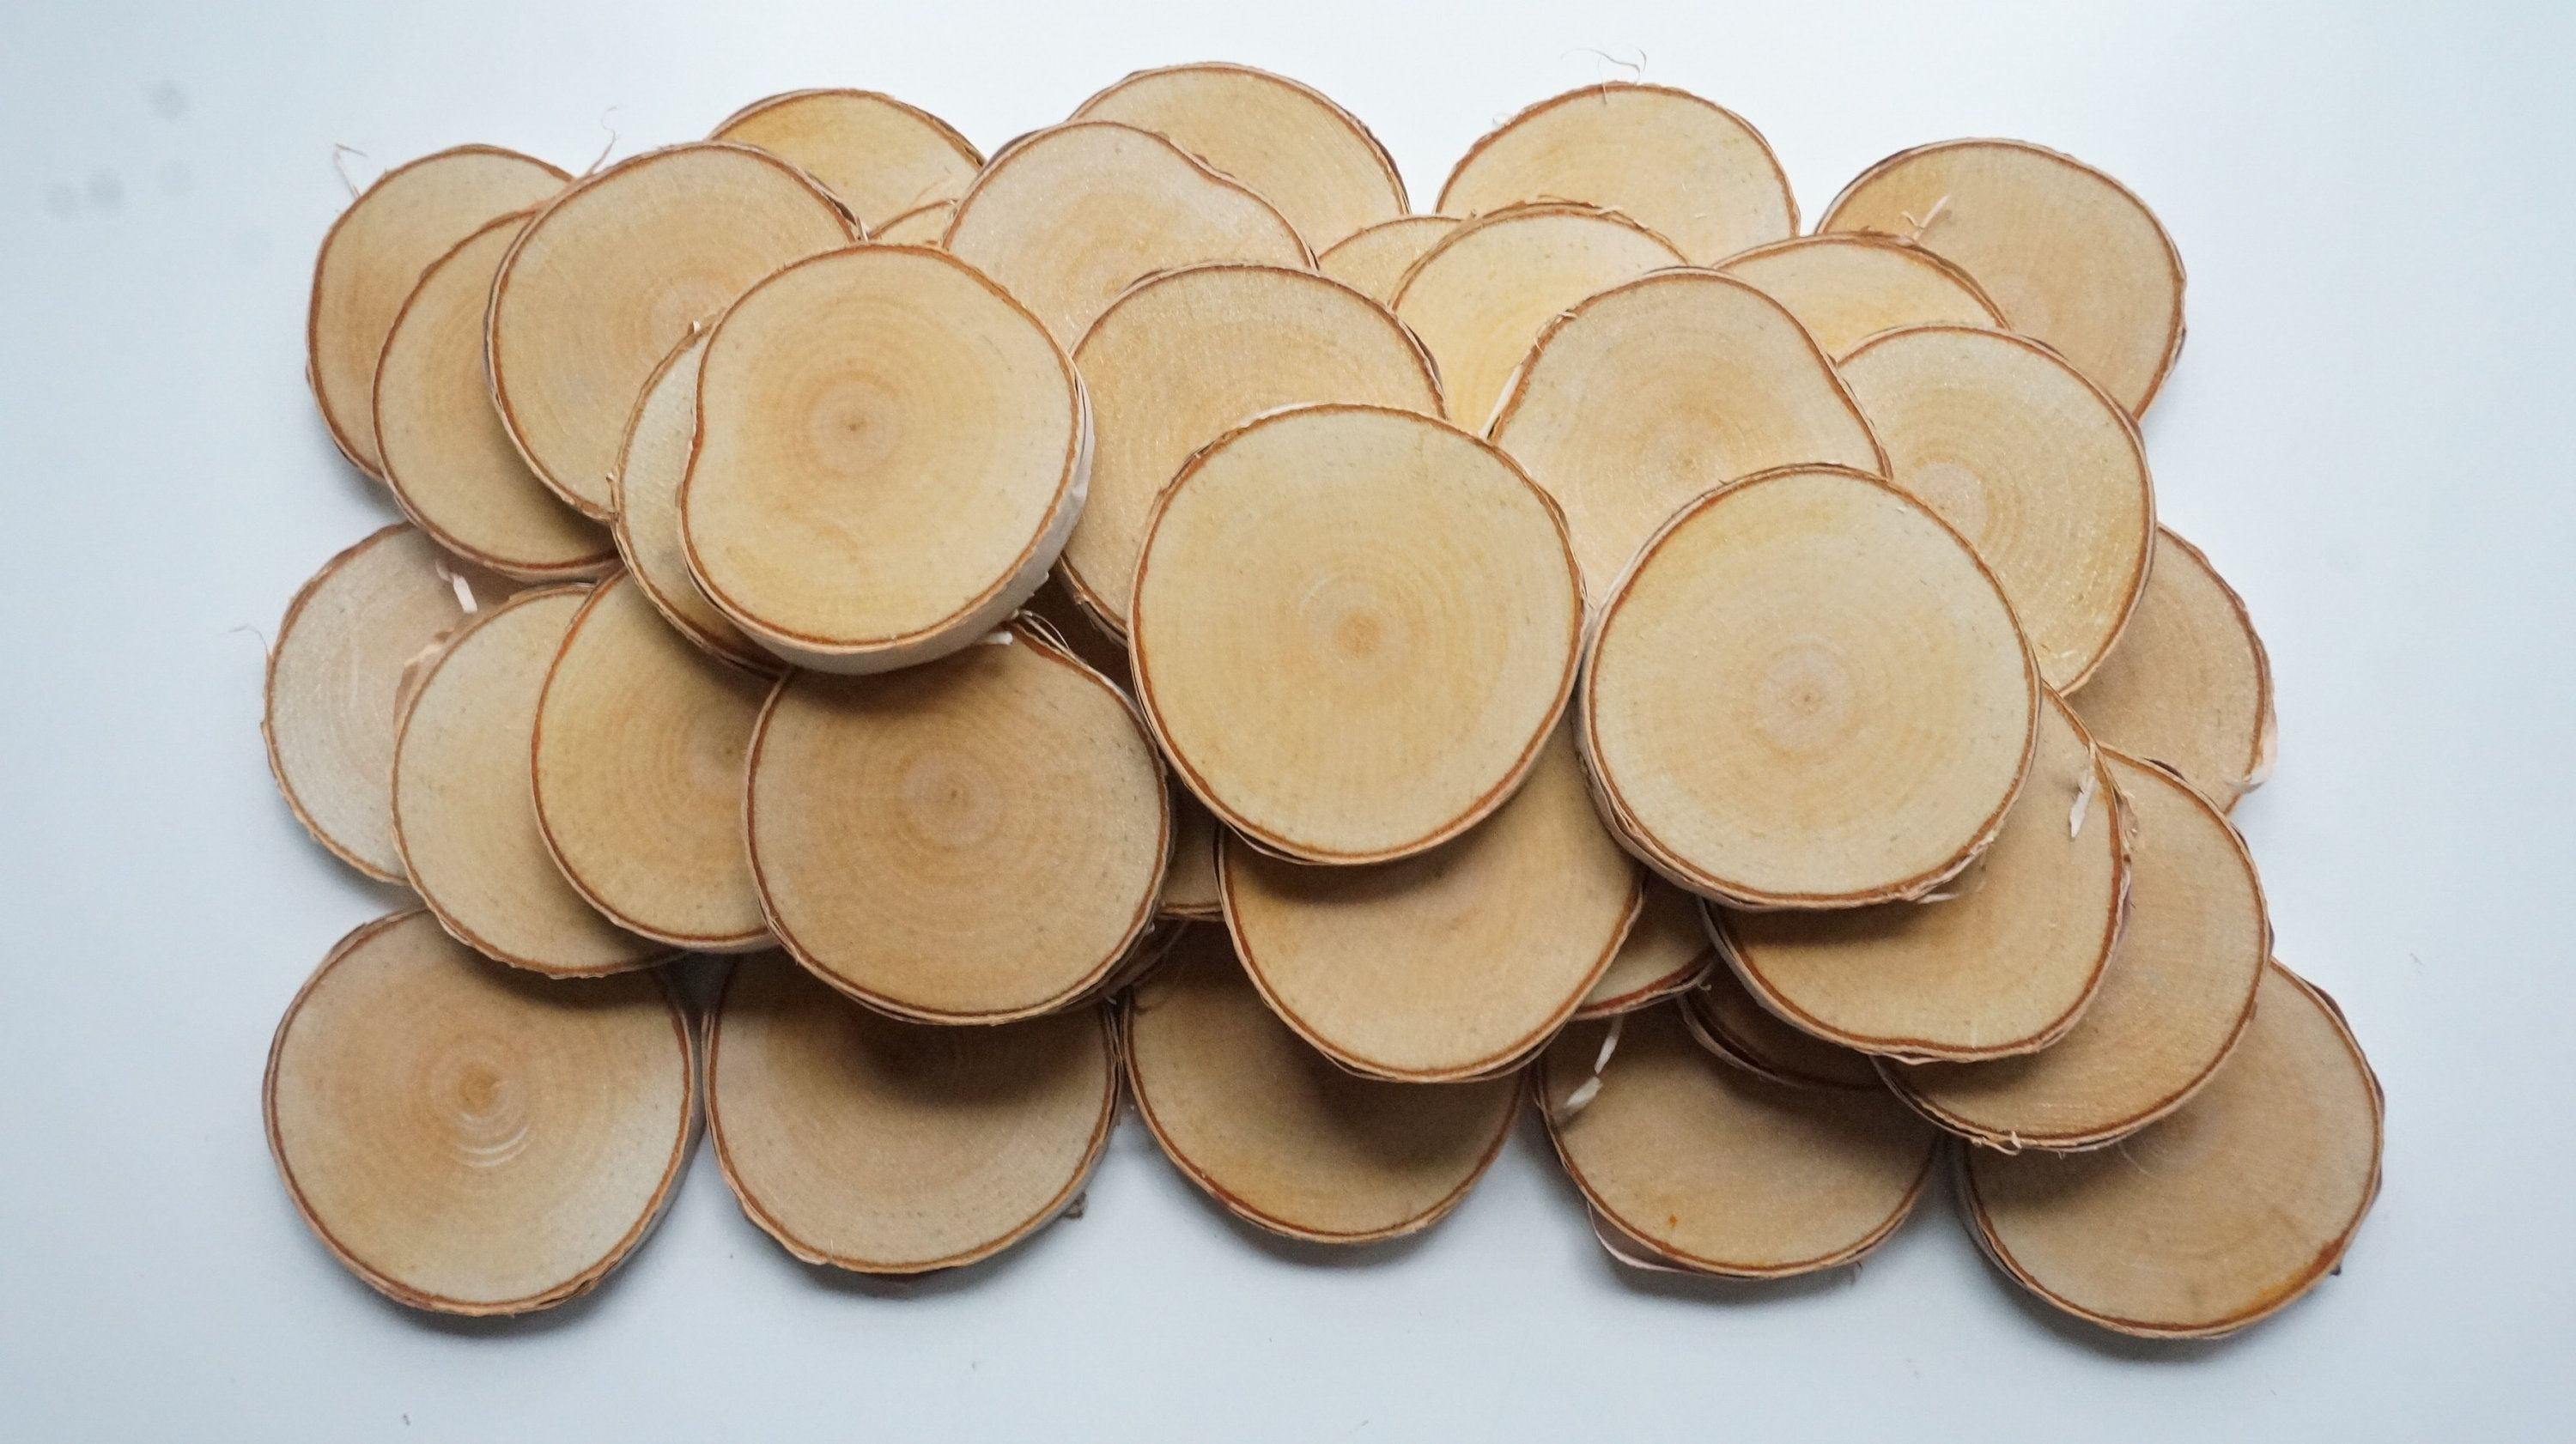 40 Birch Wood Slices 2 5 8 3 Inch Wooden Wedding Favors Ornament Blanks Log Discs Pyrography Supply Wedding Favors Wood Slices Wooden Wedding